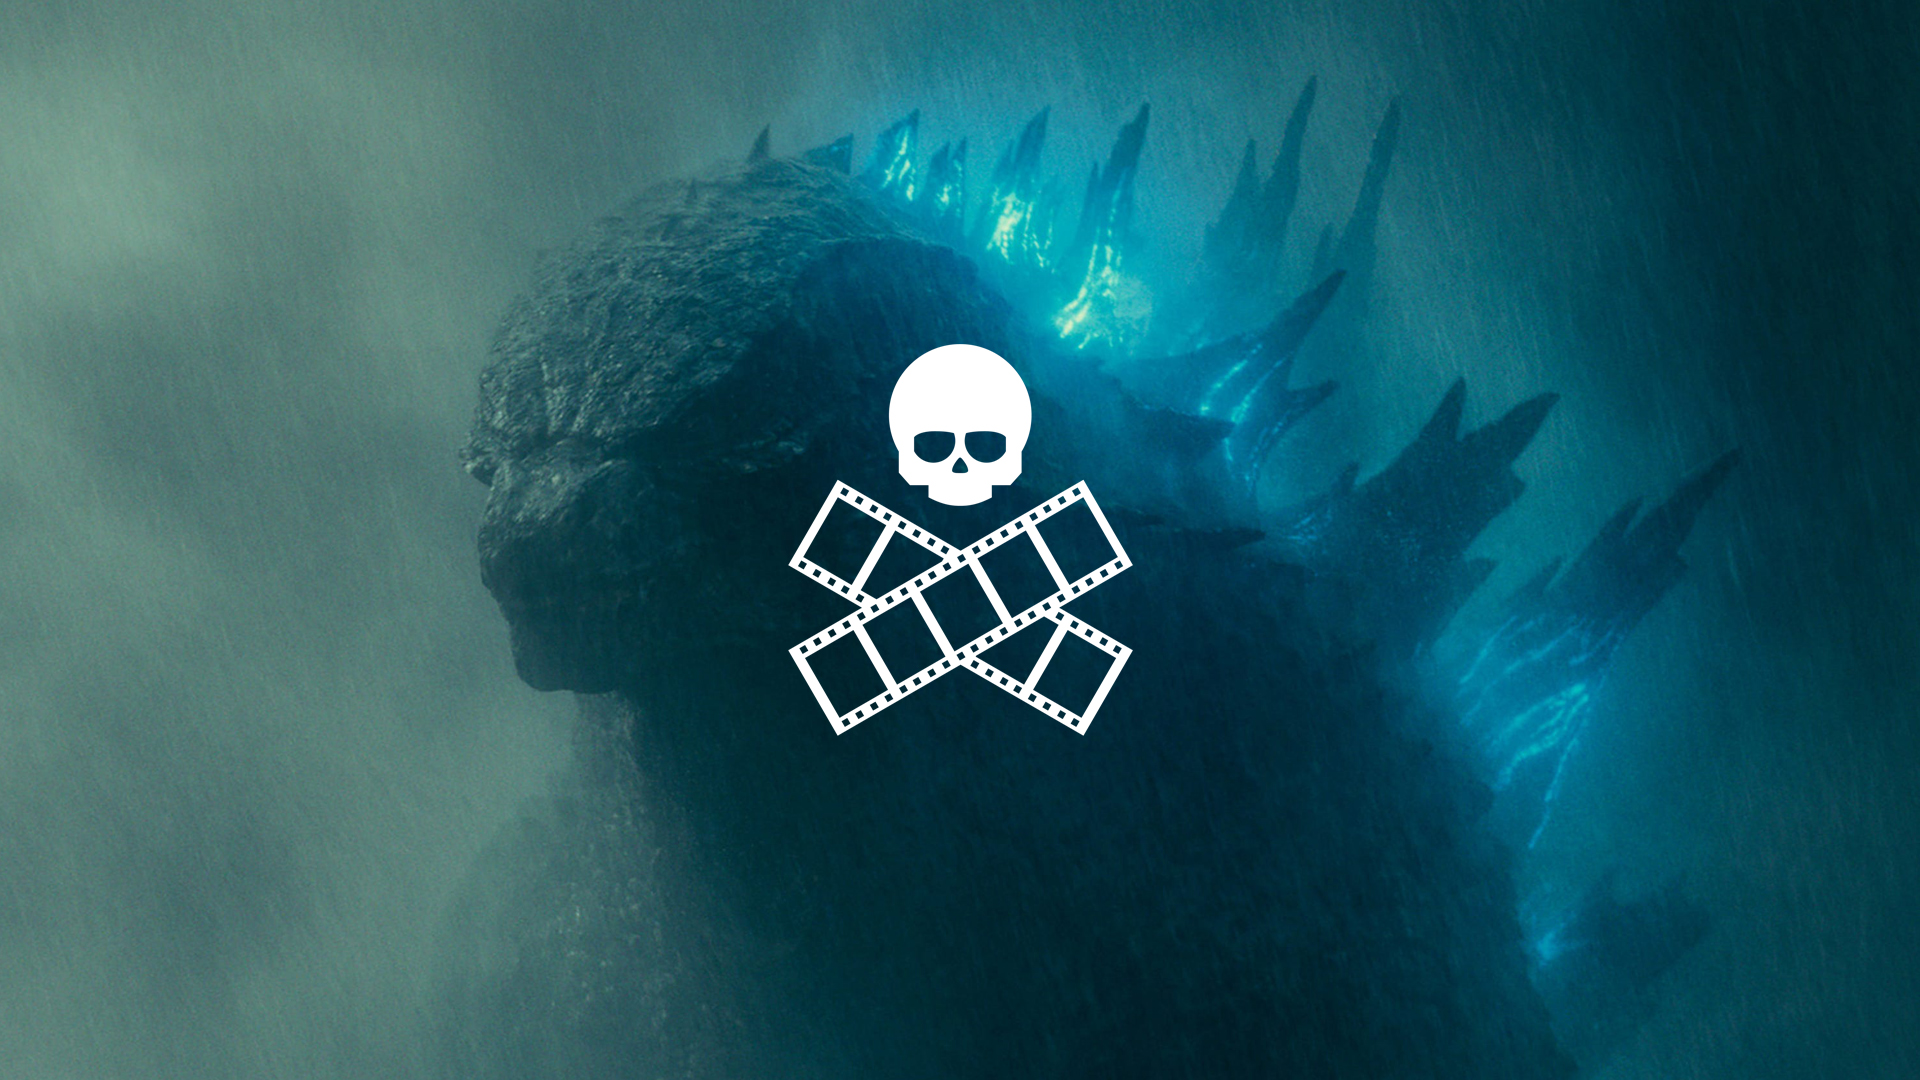 144. Godzilla King of the Monsters